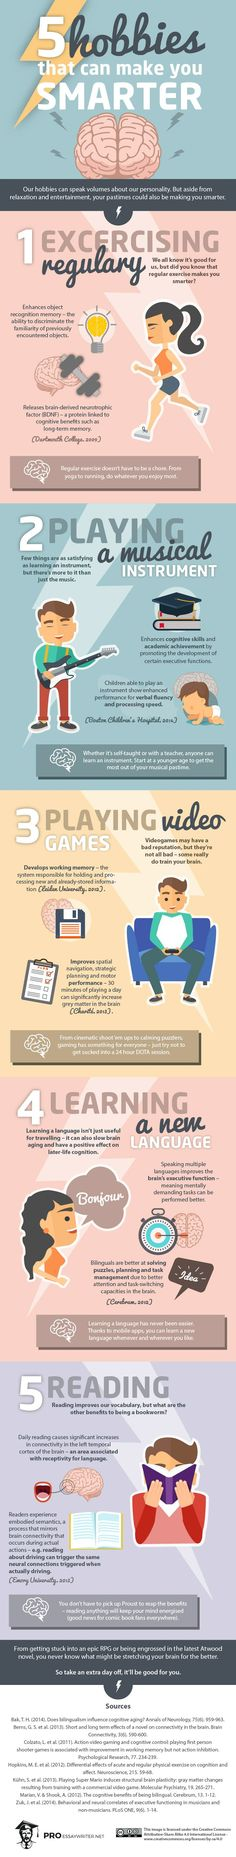 Health And Fitness: 5 Hobbies That Can Make You Smarter (Infographic)